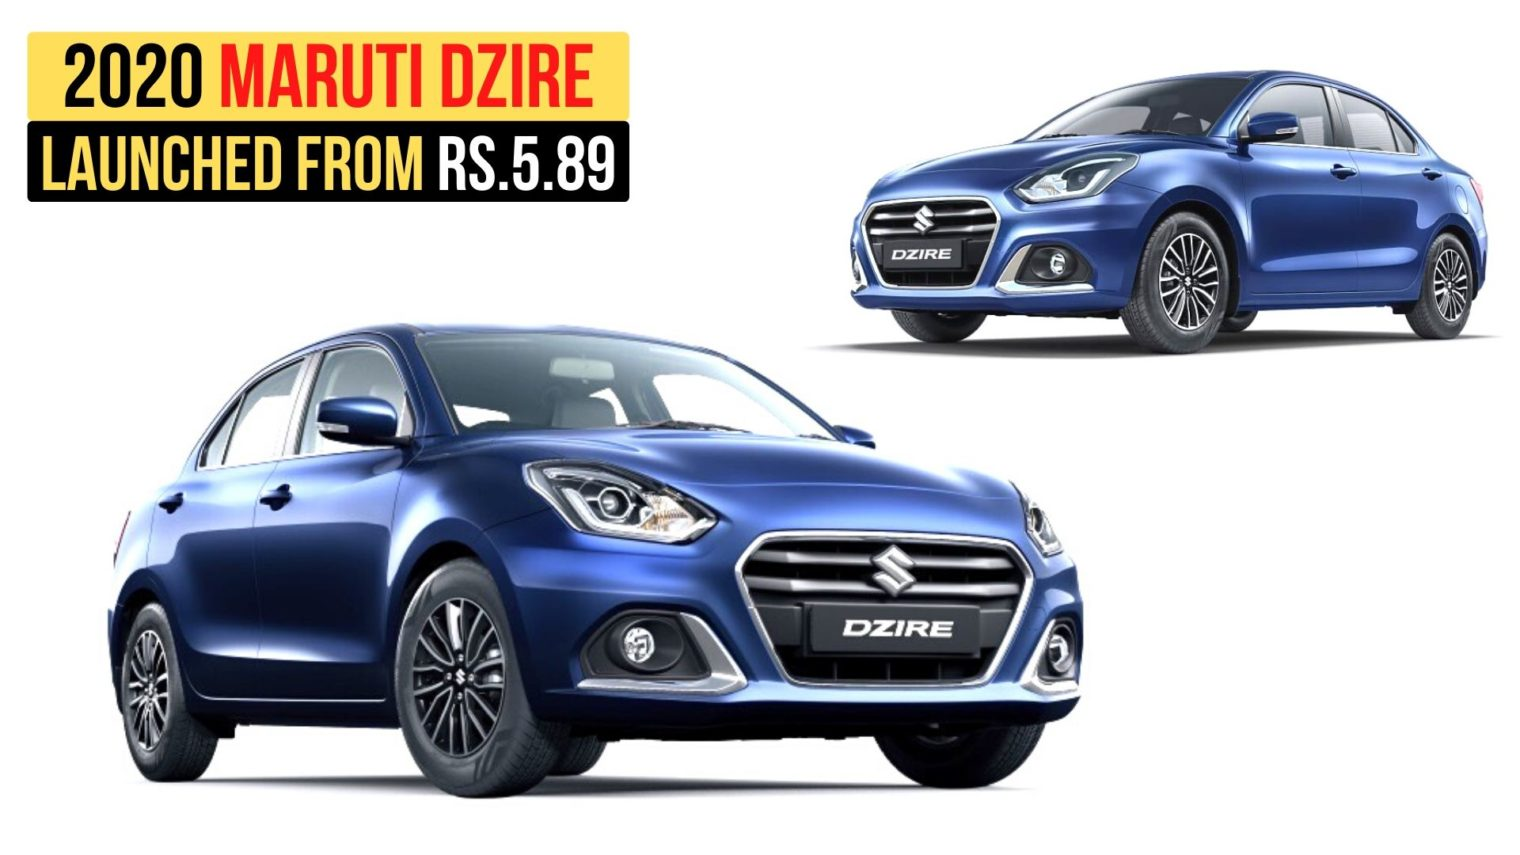 2020 Maruti Dzire Facelift Launched In India From Rs. 5.89 Lakh - GaadiWaadi.com thumbnail